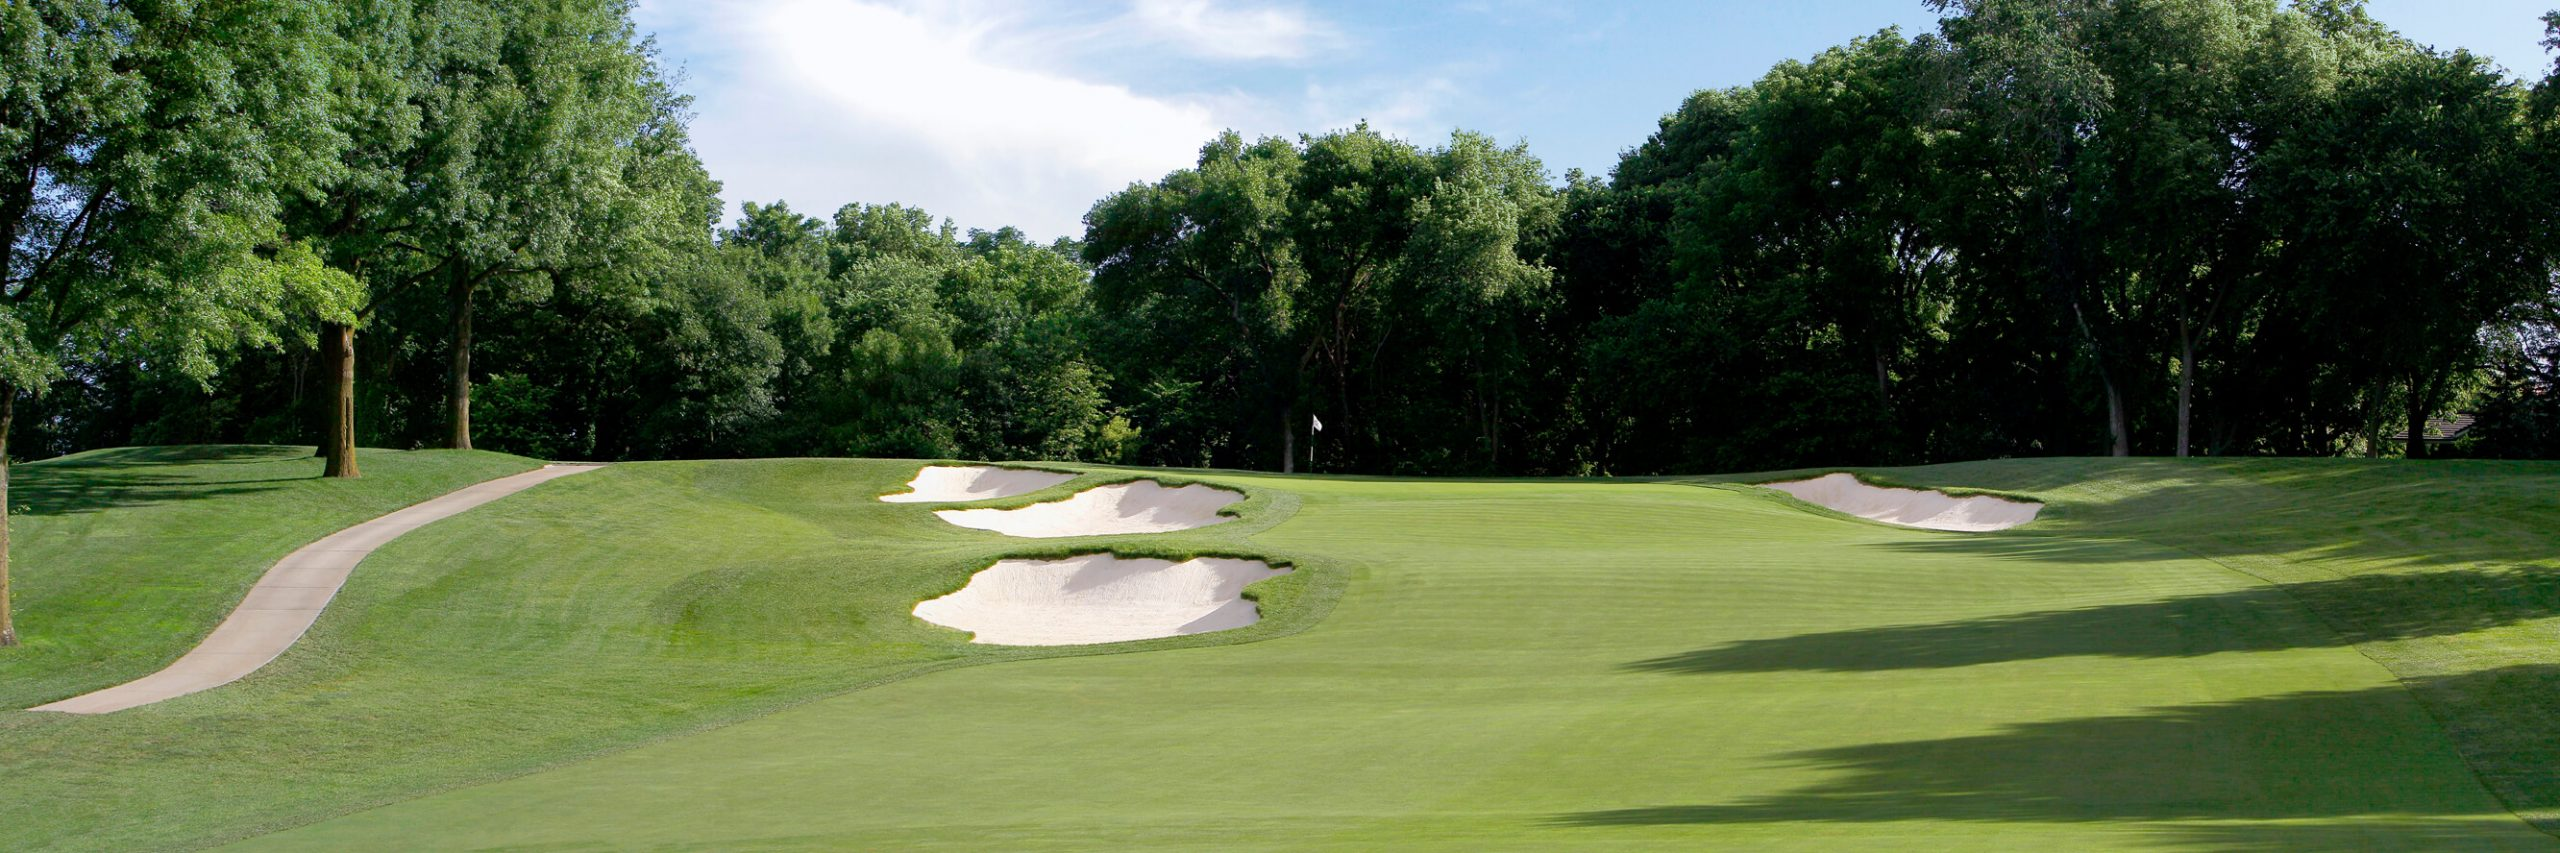 Golf Course Image - Omaha Country Club No. 2